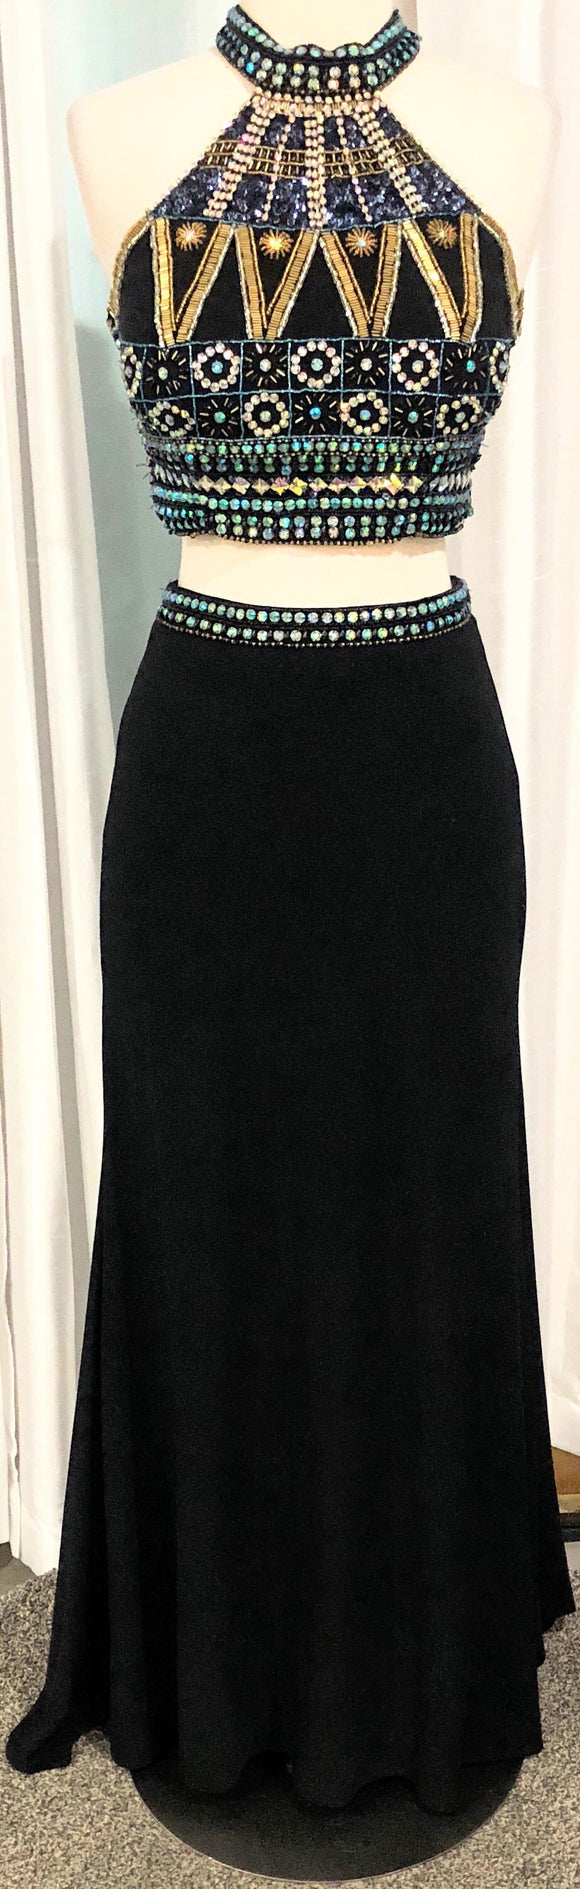 SHAE COUTURE NAVY TWO-PIECE LONG DRESS SIZE 7/8